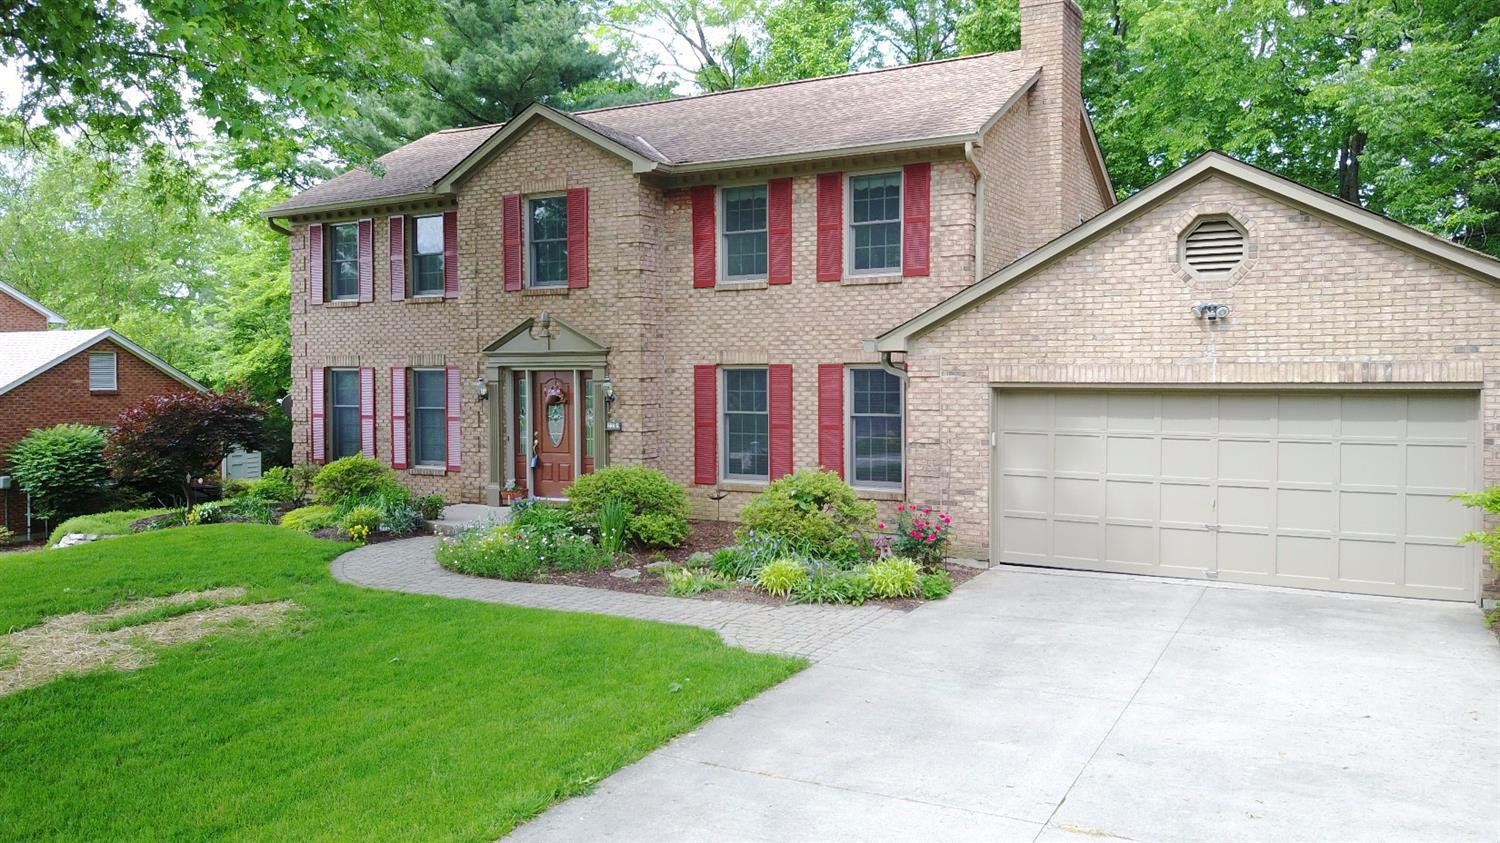 2289 Donnington Lane, Anderson Twp, OH 45244